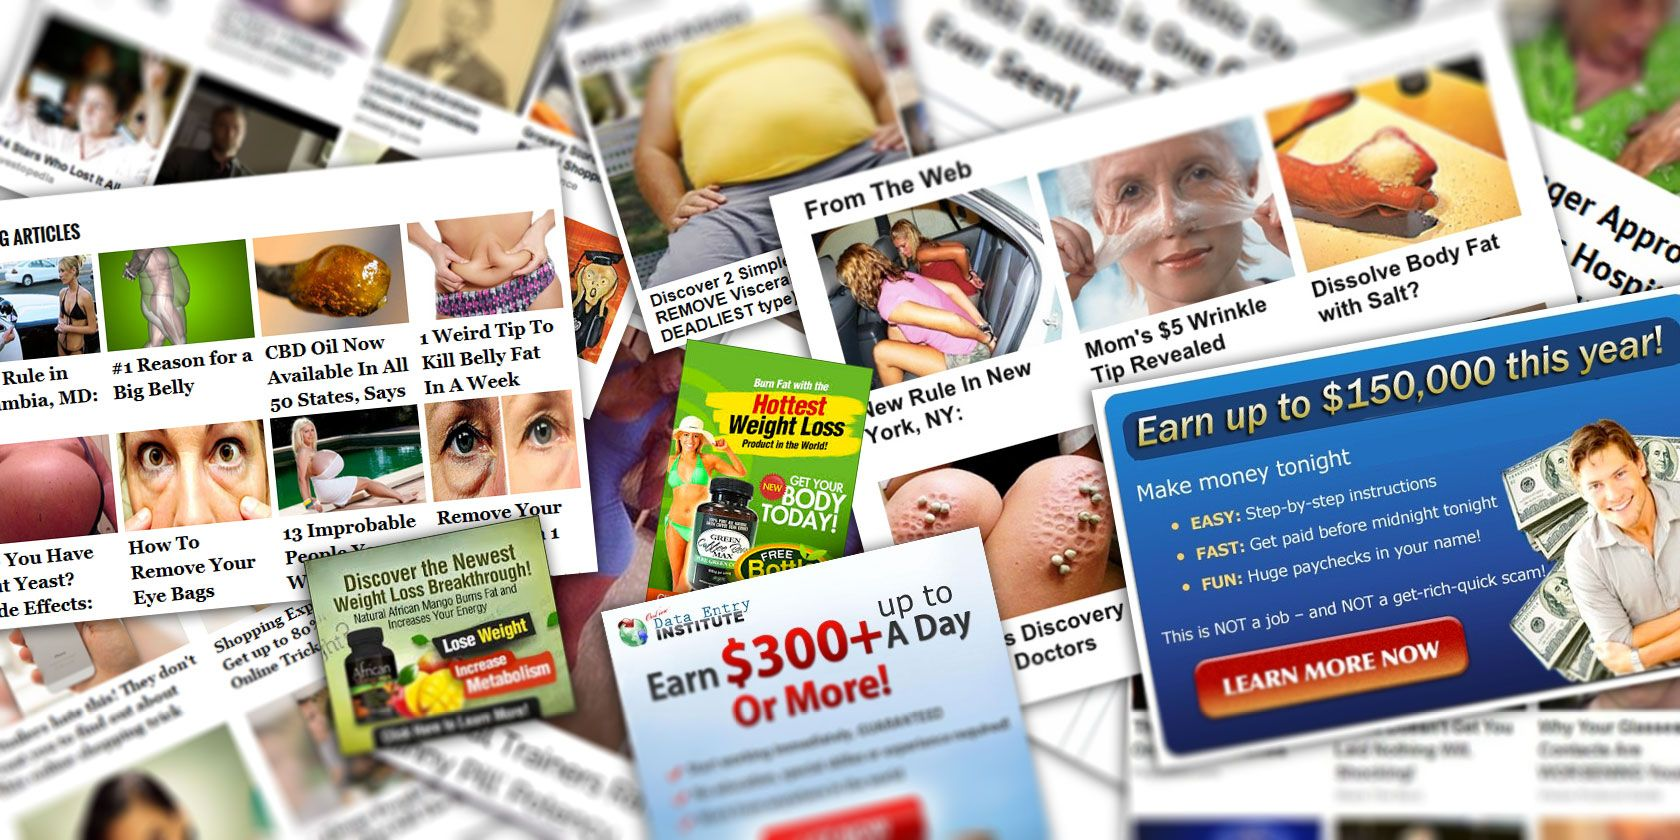 We Followed Clickbait Internet Ads: Here's What We Found